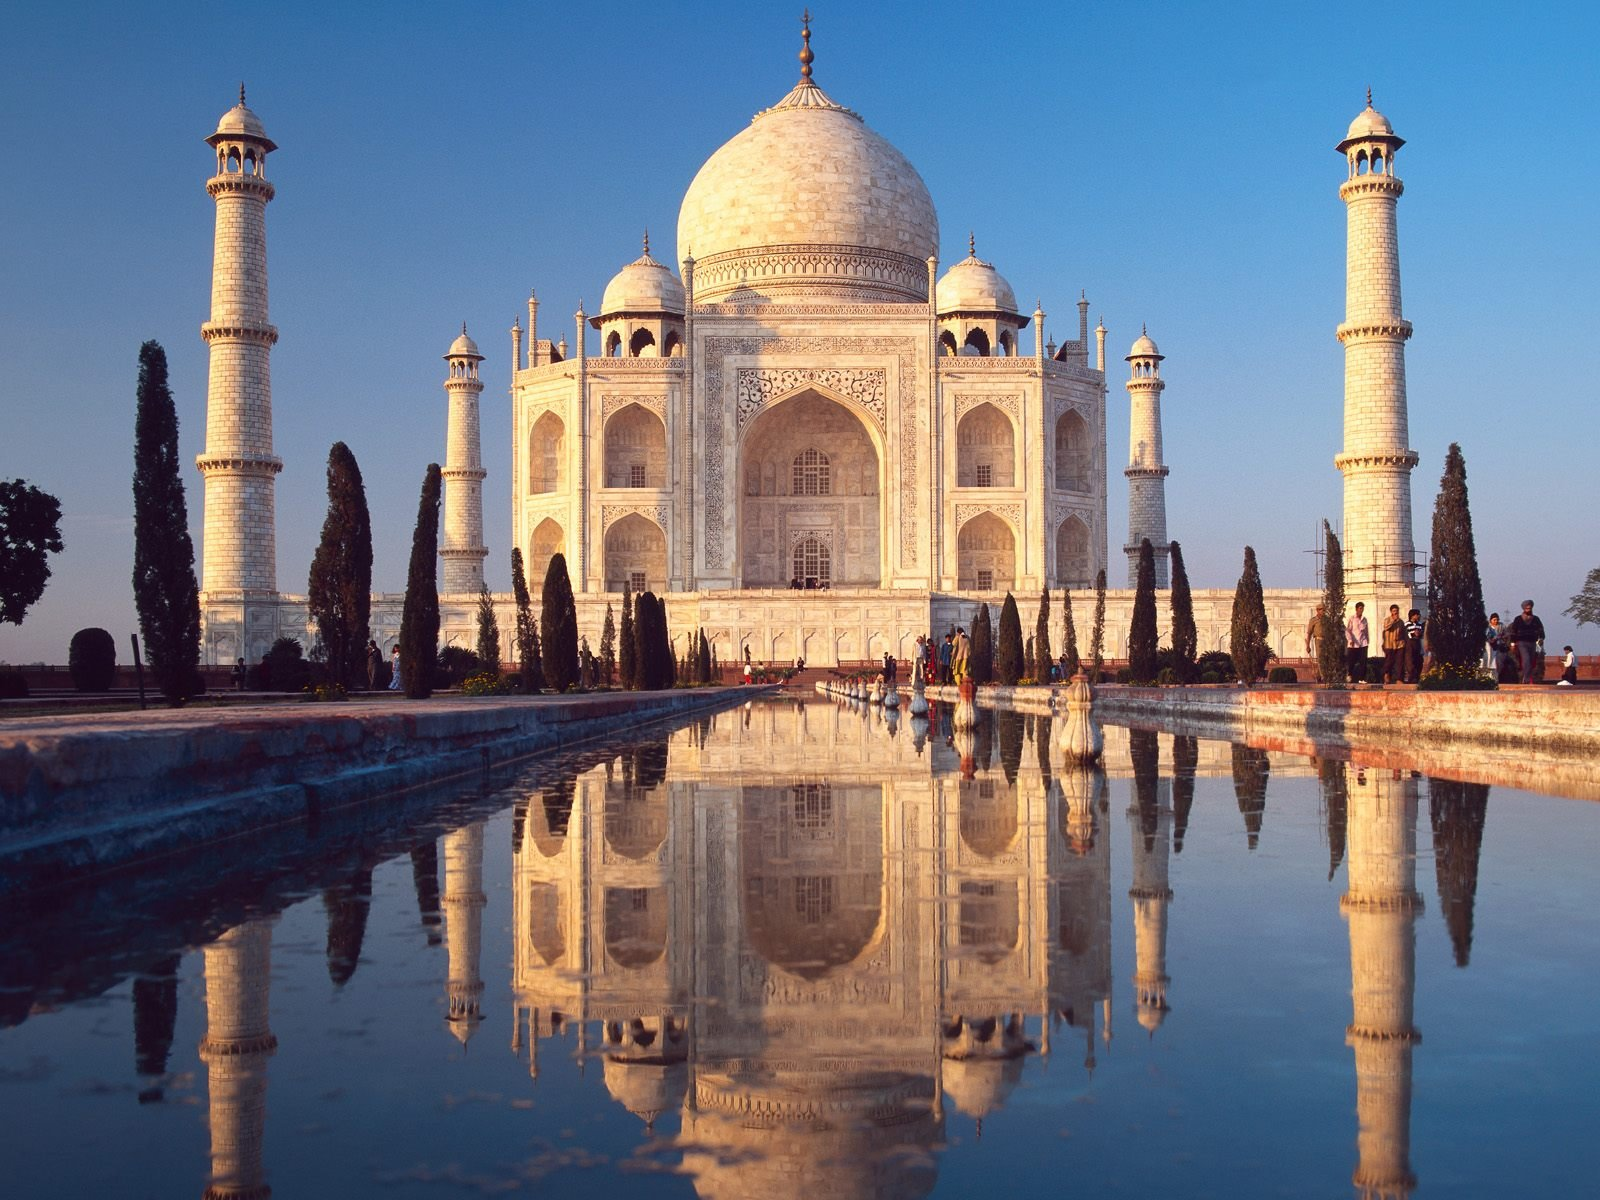 Taj mahal is a symbol of emperor's love